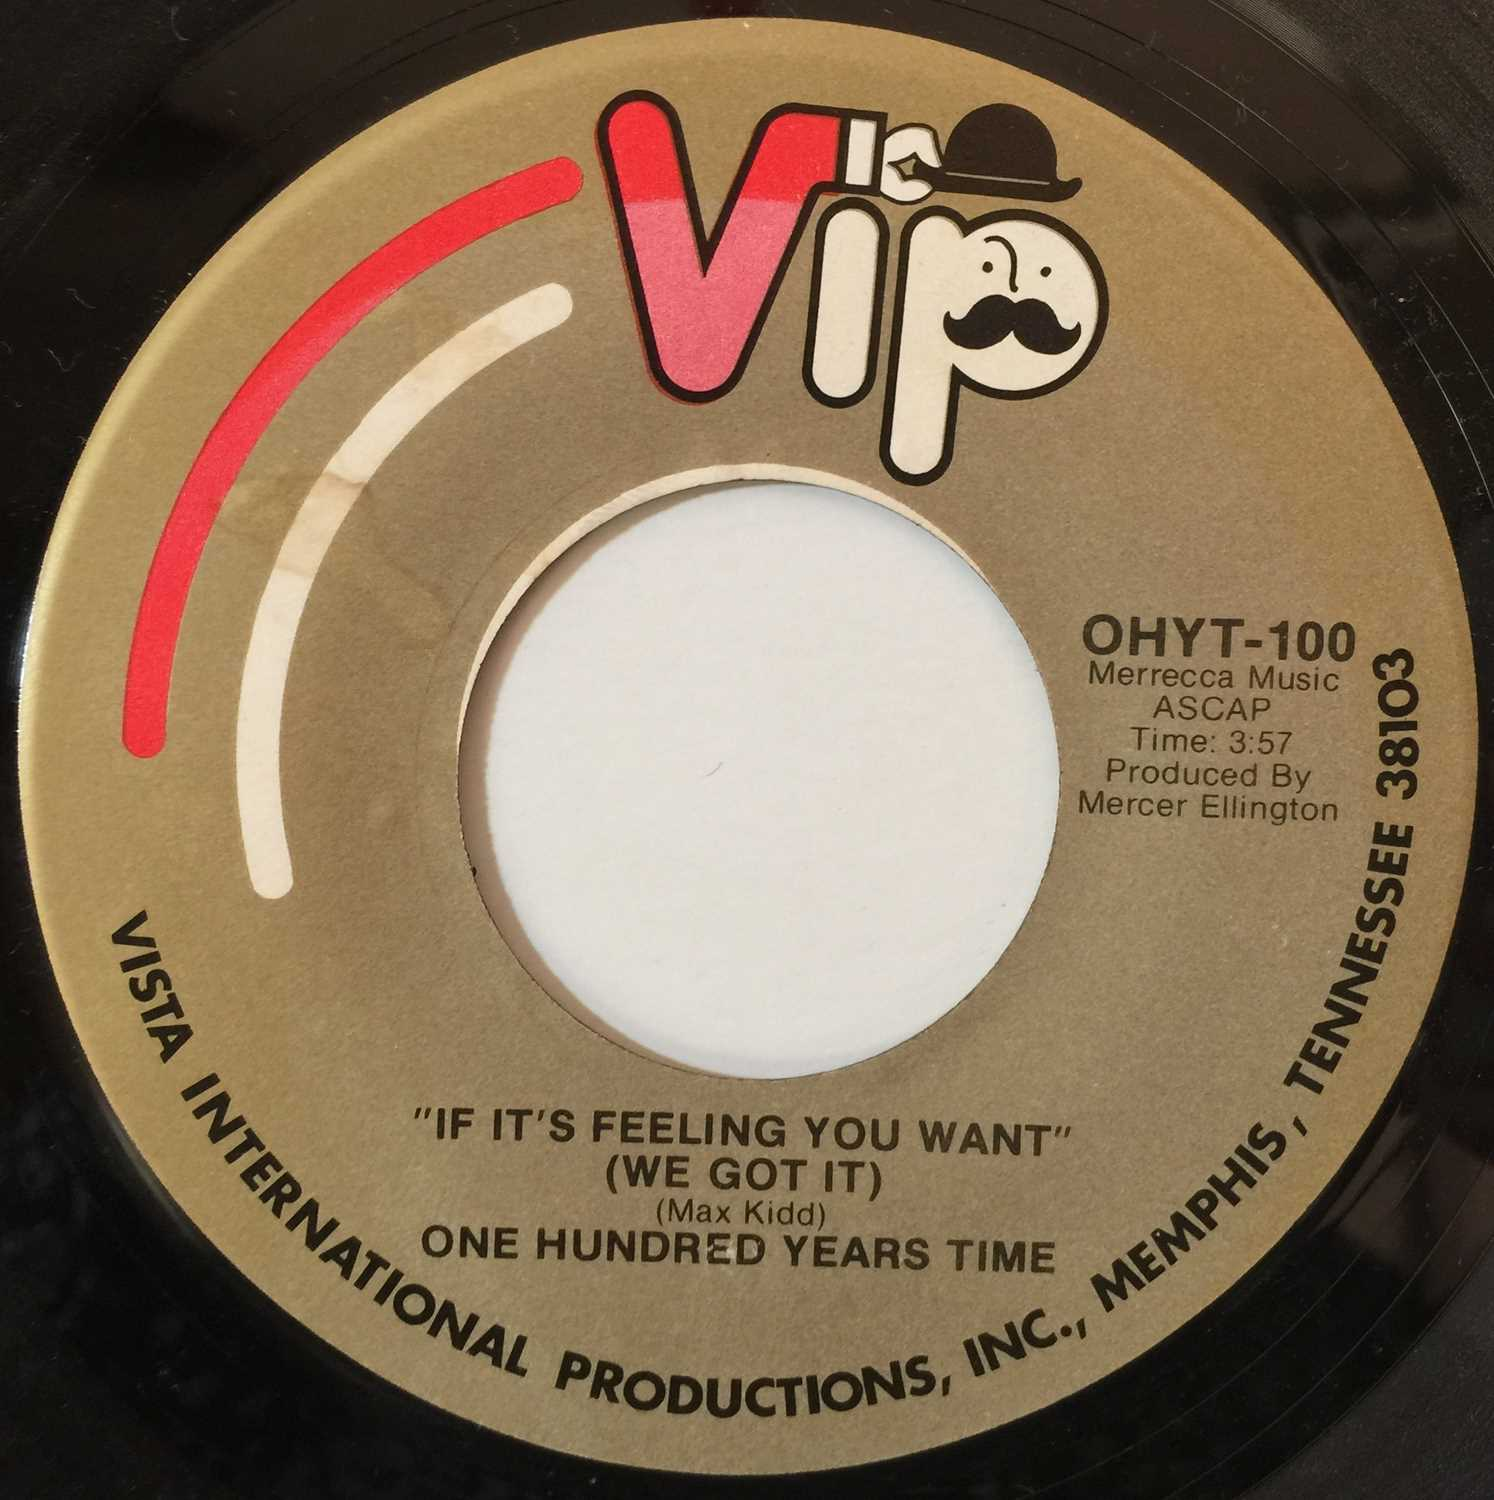 """ONE HUNDRED YEARS TIME - IF IT'S FEELING YOU WANT 7"""" (VIP RECORDS - OHYT-100/200) - Image 2 of 3"""